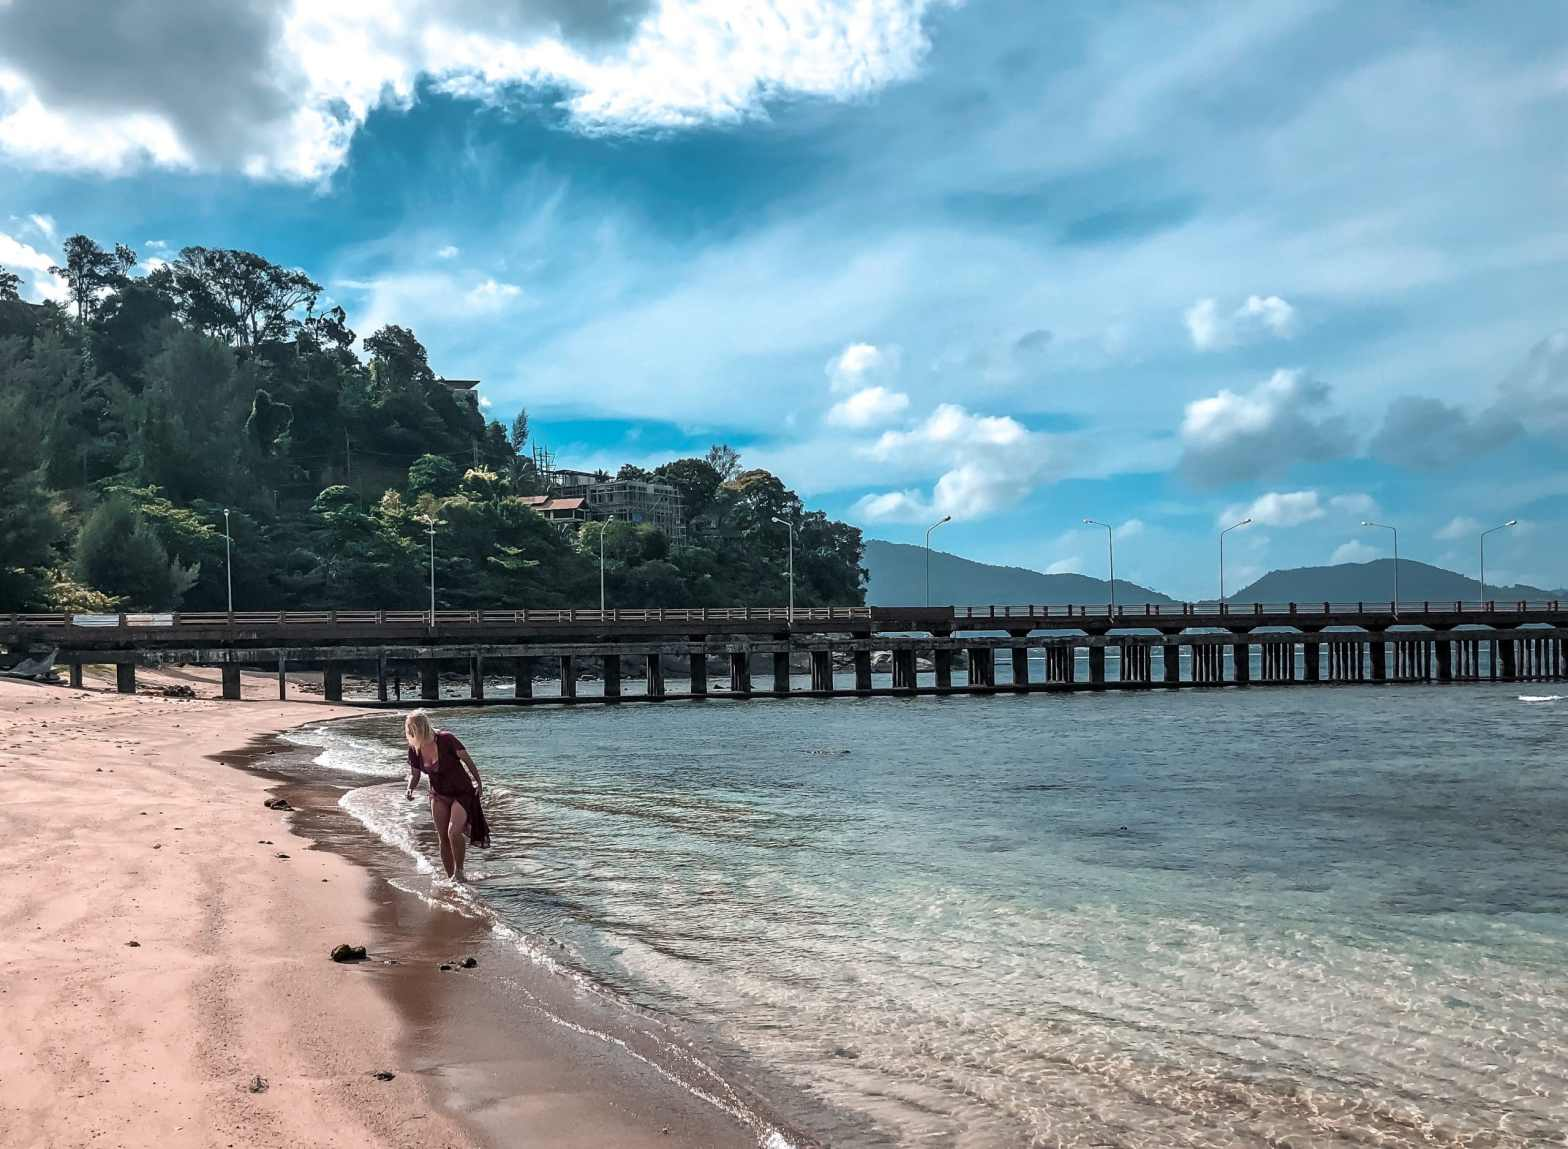 Woman walking in beach in Phuket, Thailand